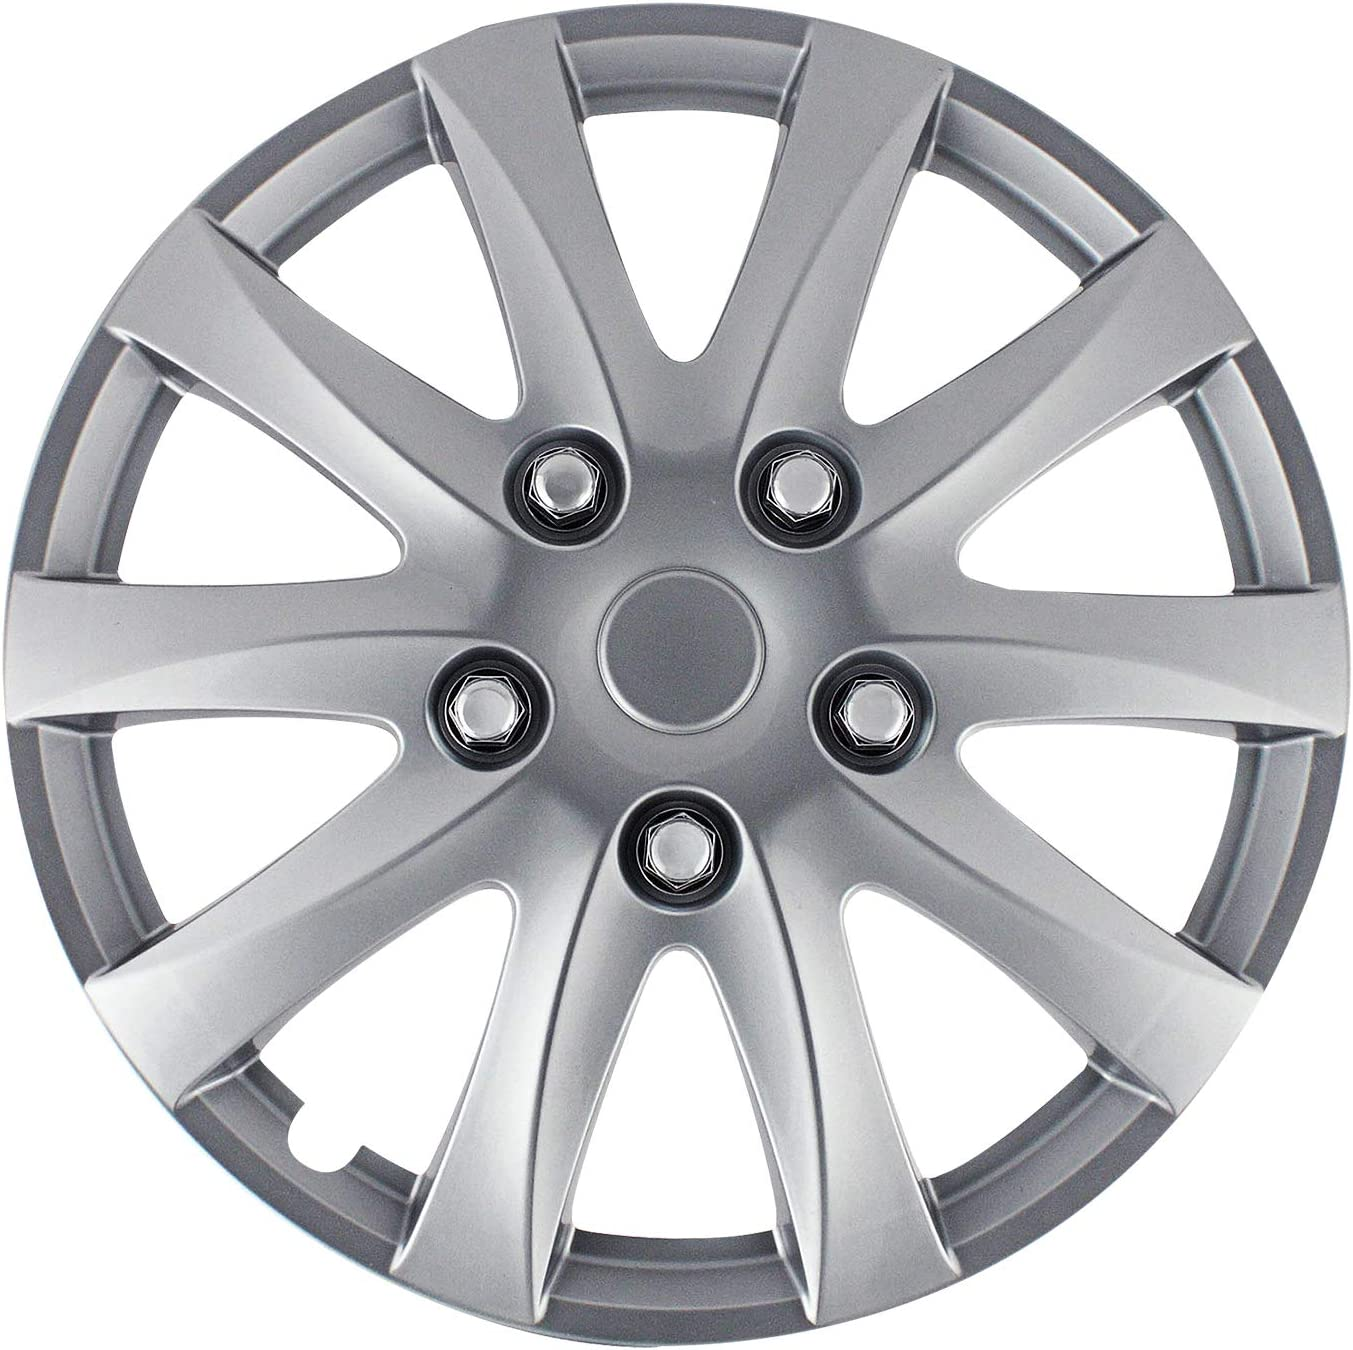 Pilot Automotive WH526-15S-BX Silver Universal Camry Style Wheel Covers Hubcaps 15 inch Replacement Cover (Set of 4) for Stock Rims Fits Cars from Nissan, Honda, Toyota, Ford, Chevy, Mazda and Others